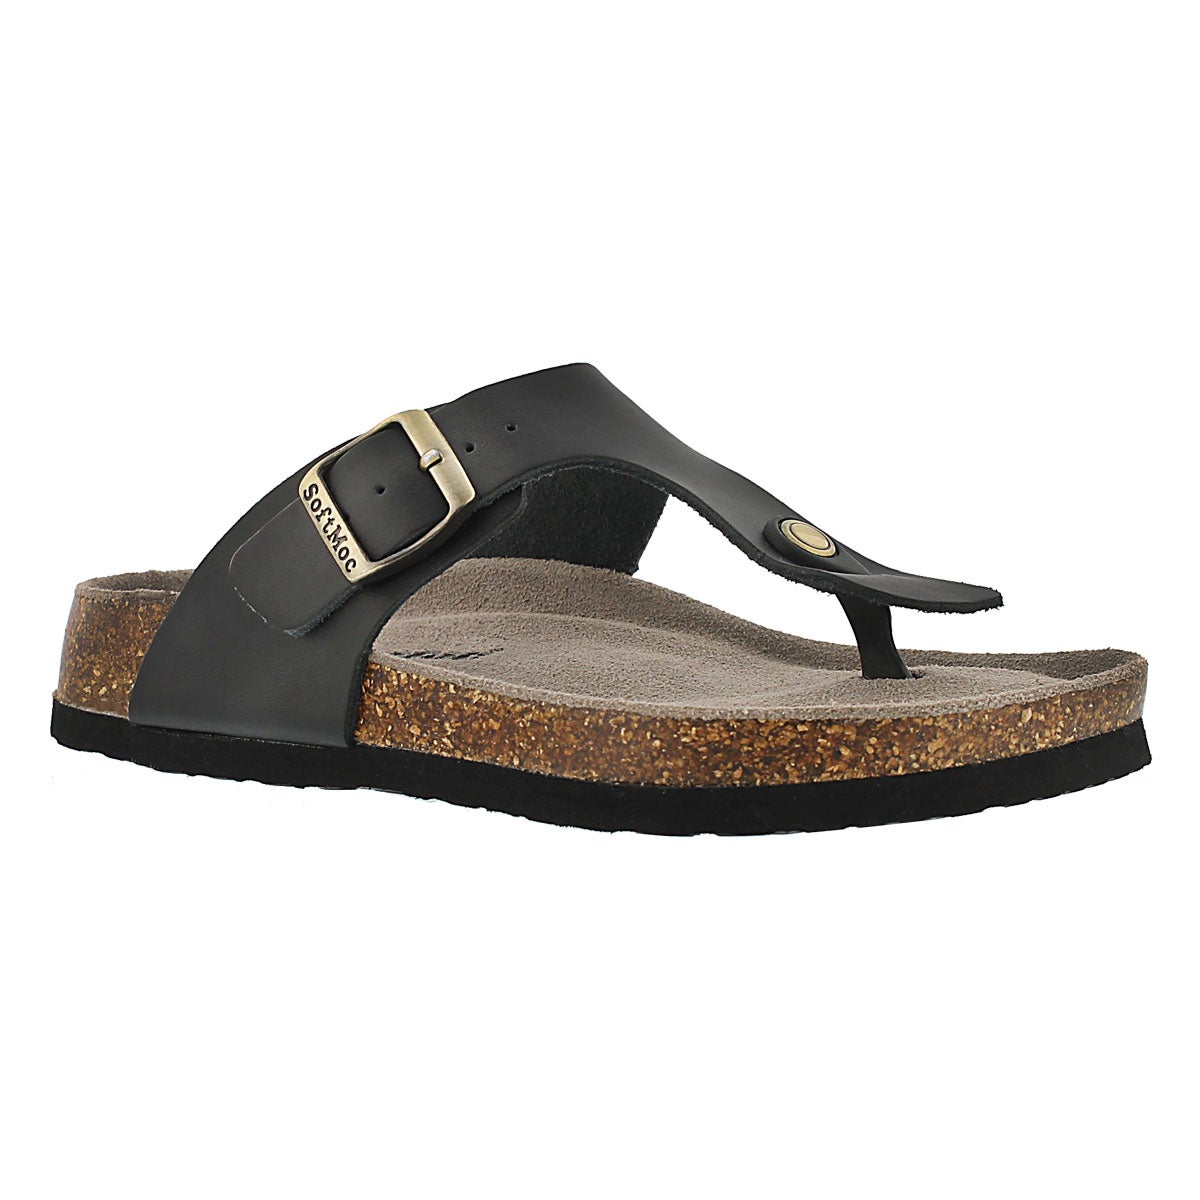 Lds Angy 4 blk memory foam thong sandal